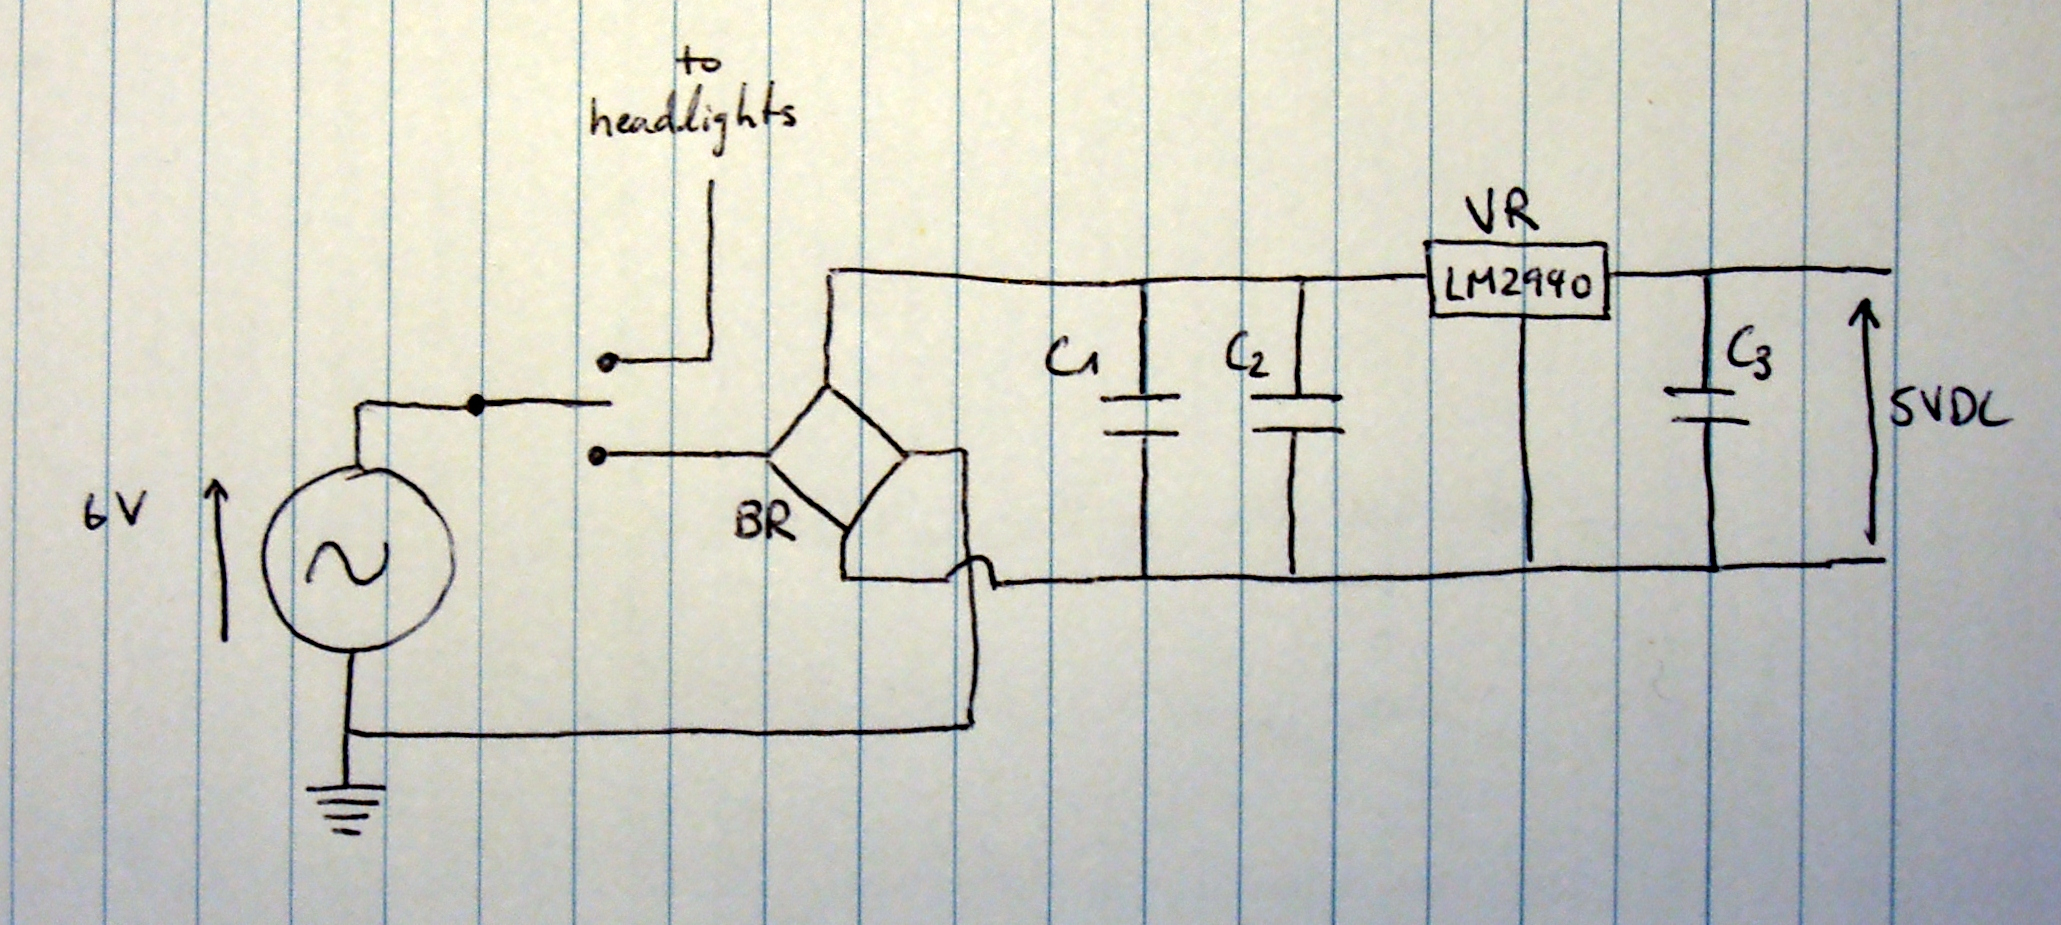 Charging Usb Devices From A Hub Dynamo   Parttimetinkerer - Diy Power Bar Wiring Diagram Usb Charger